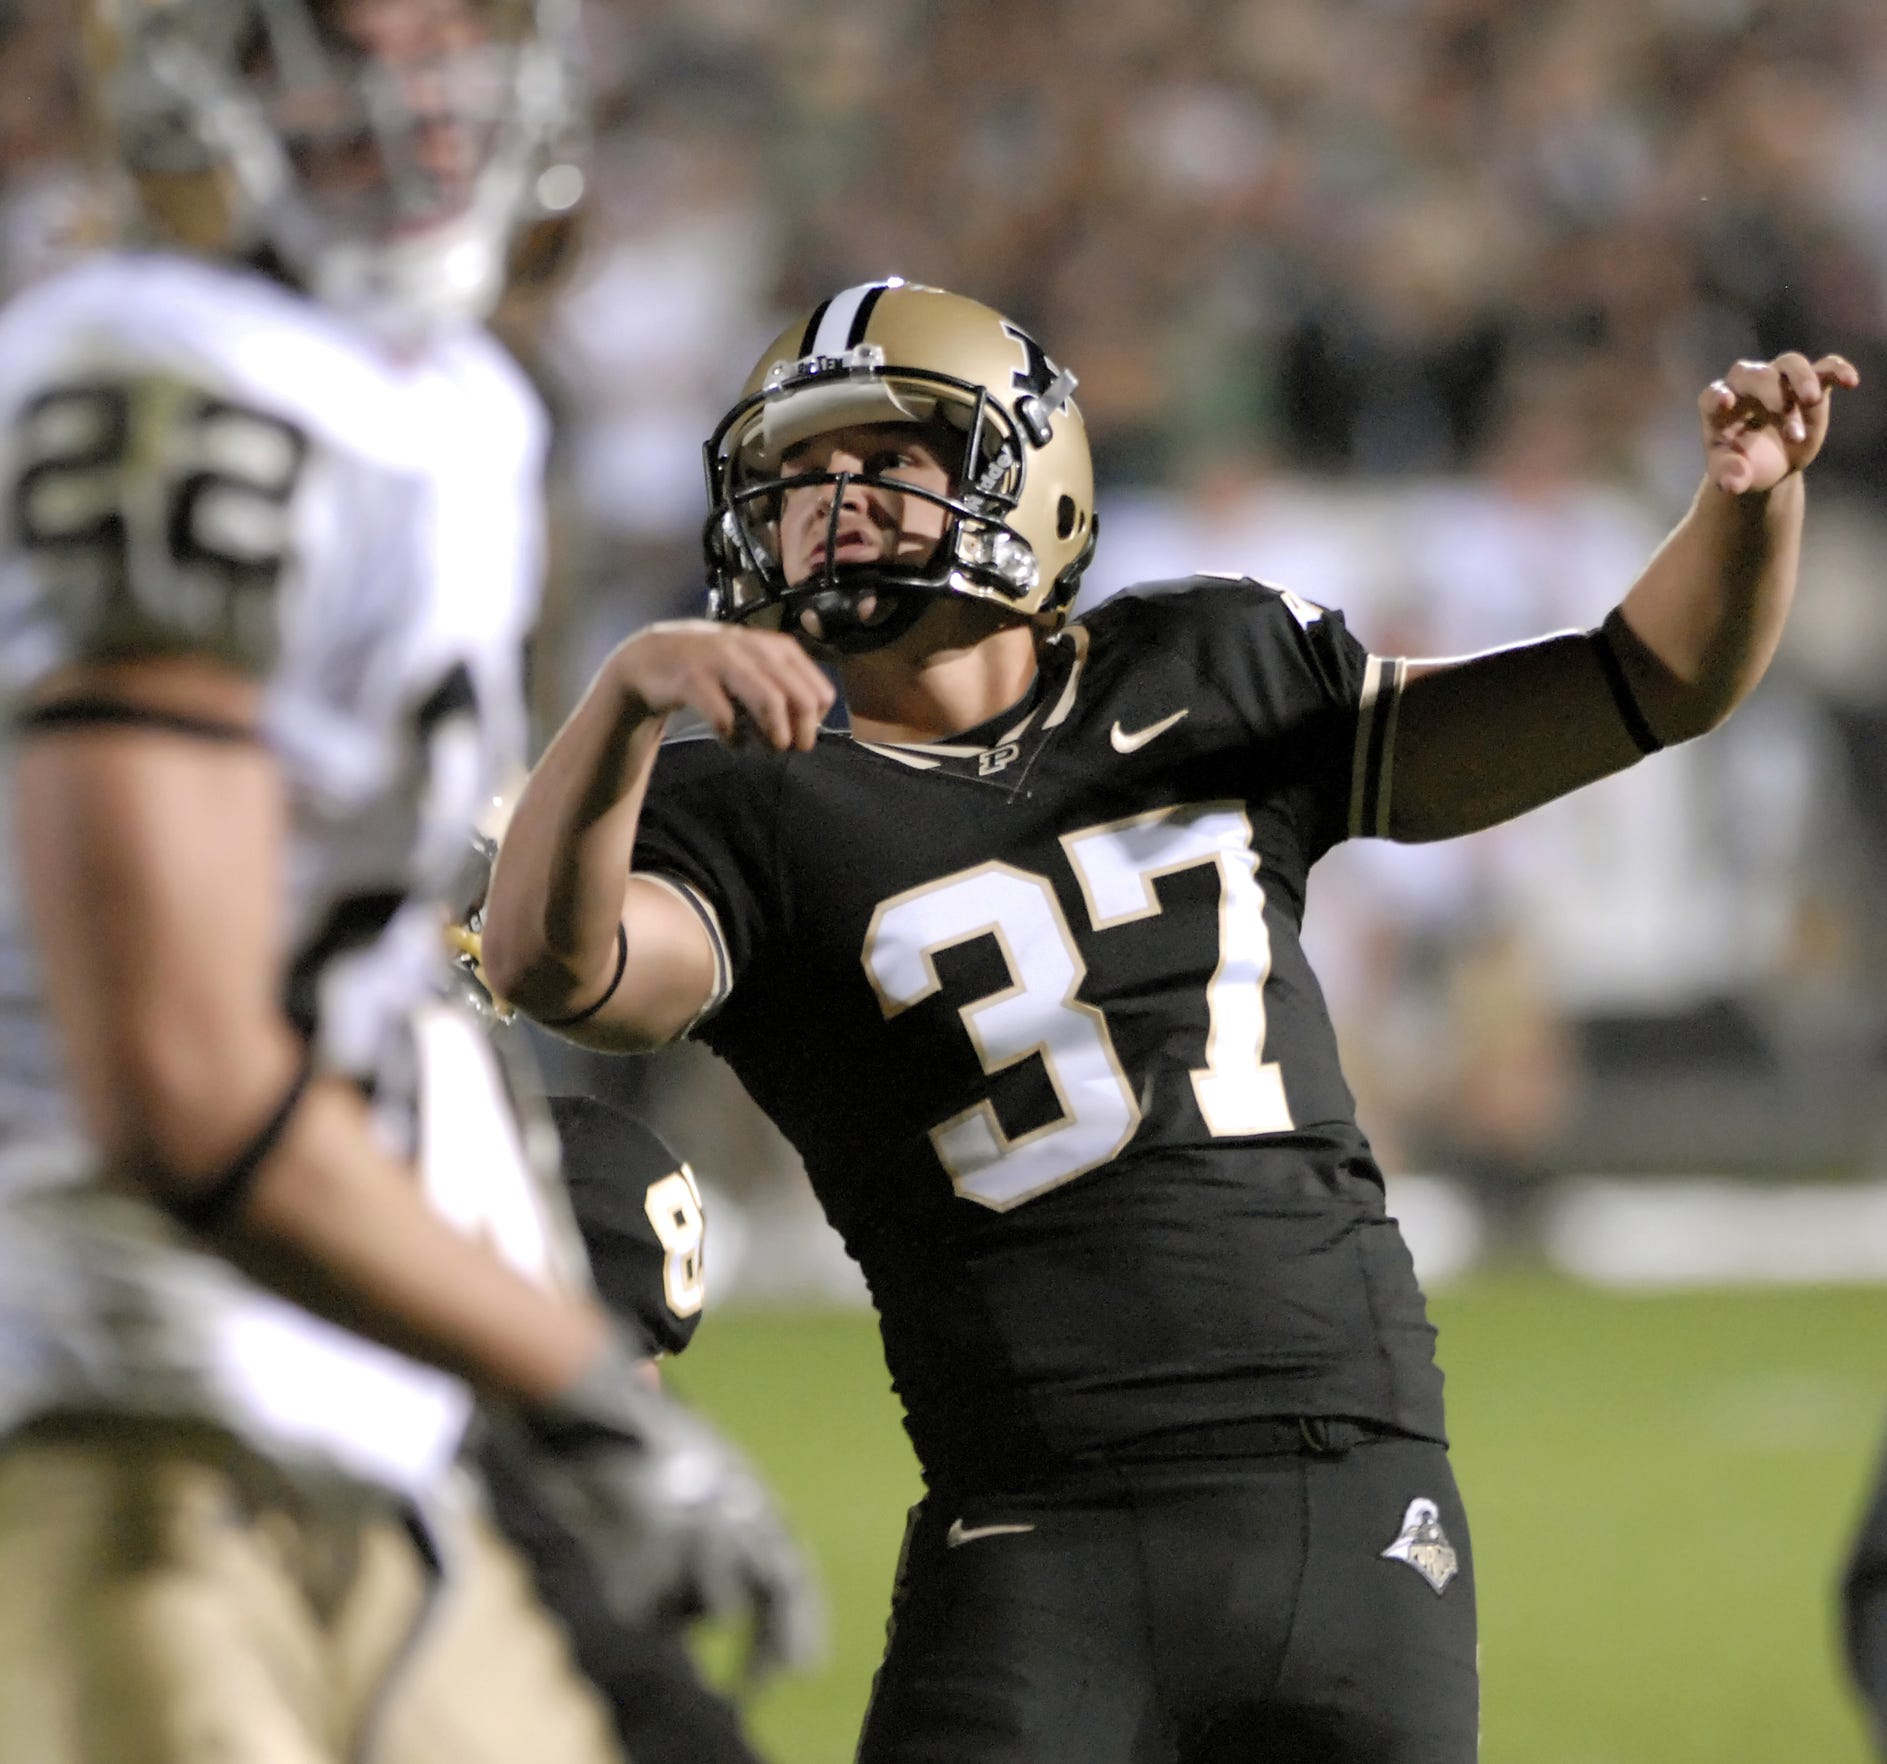 Purdue kicker Carson Wiggs (37) follows through on an extra point attempt against Notre Dame during the second half at Ross-Ade Stadium in West Lafayette on Saturday, September 26, 2009.